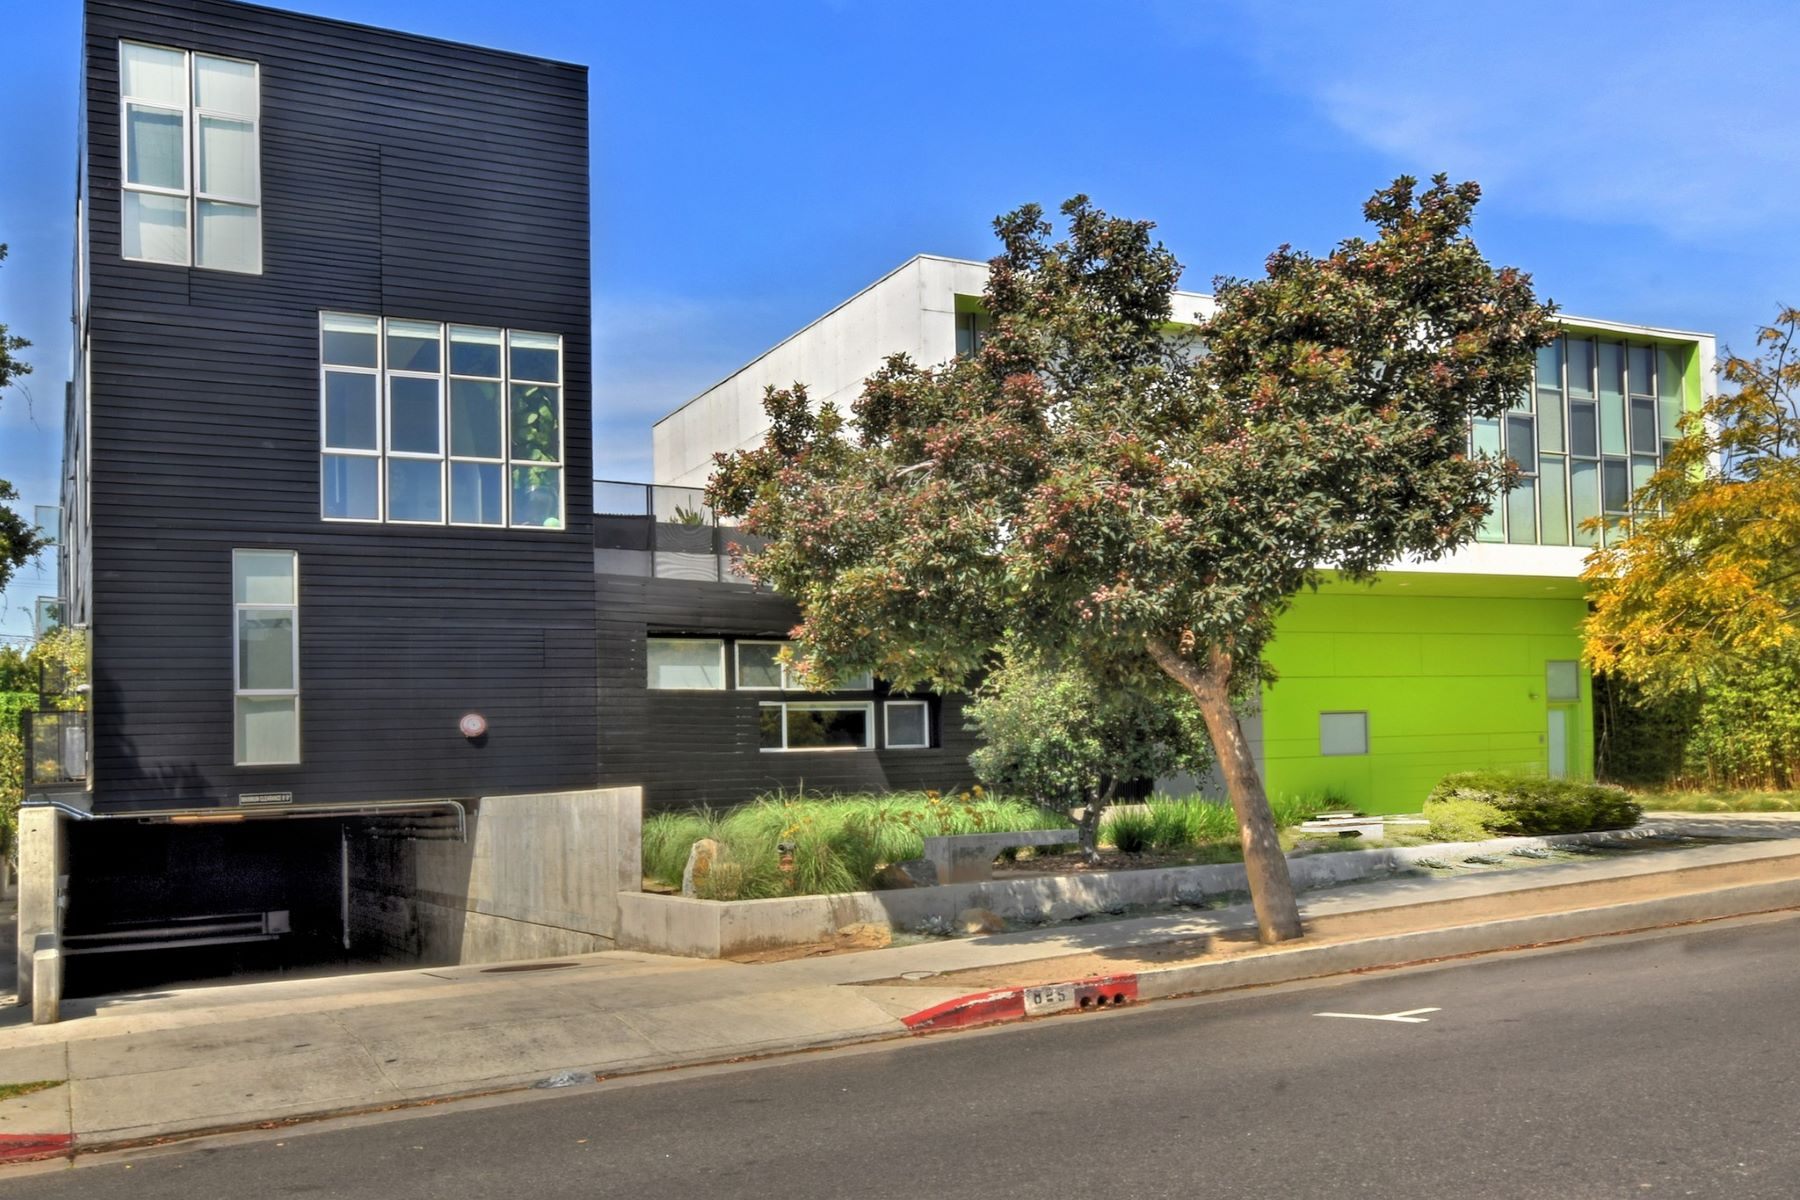 Condominiums for Sale at 825 N Kings Road #4 West Hollywood, California 90069 United States